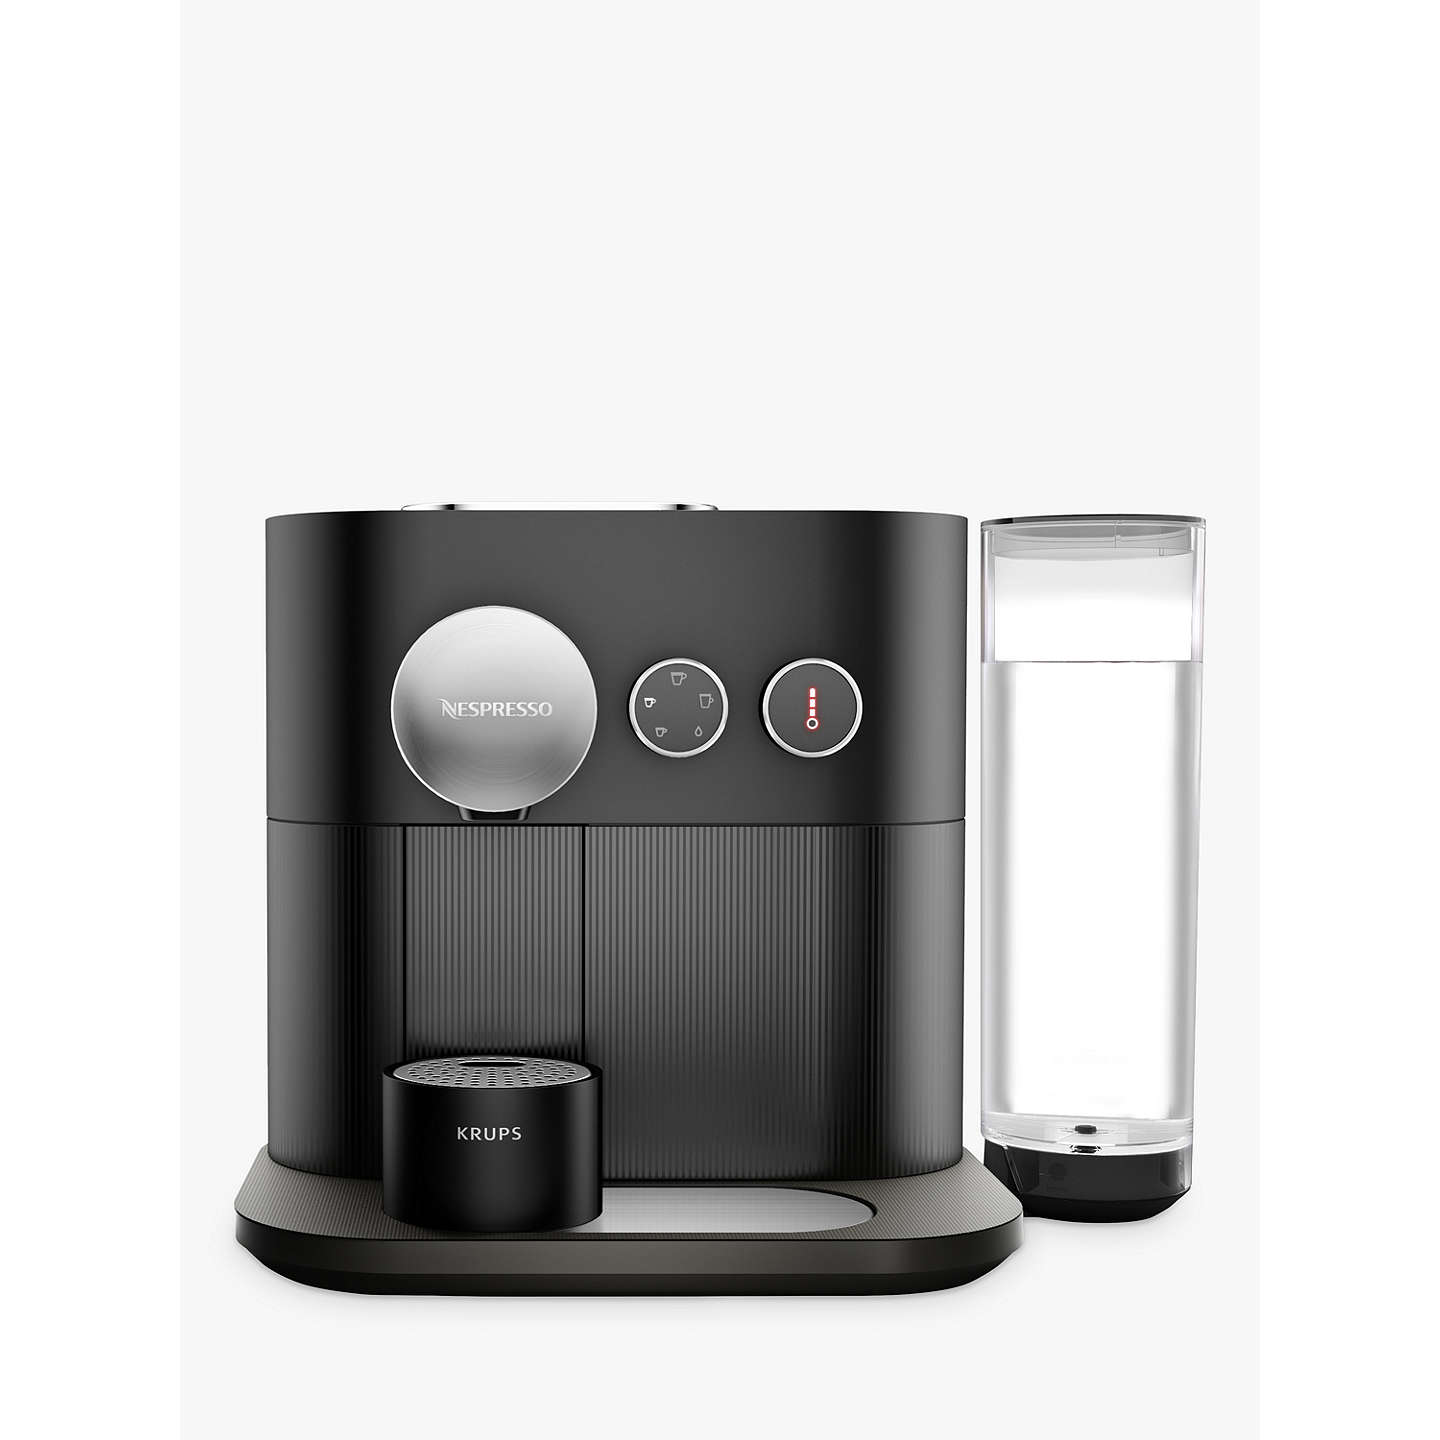 nespresso expert coffee machine by krups matt black at john lewis. Black Bedroom Furniture Sets. Home Design Ideas